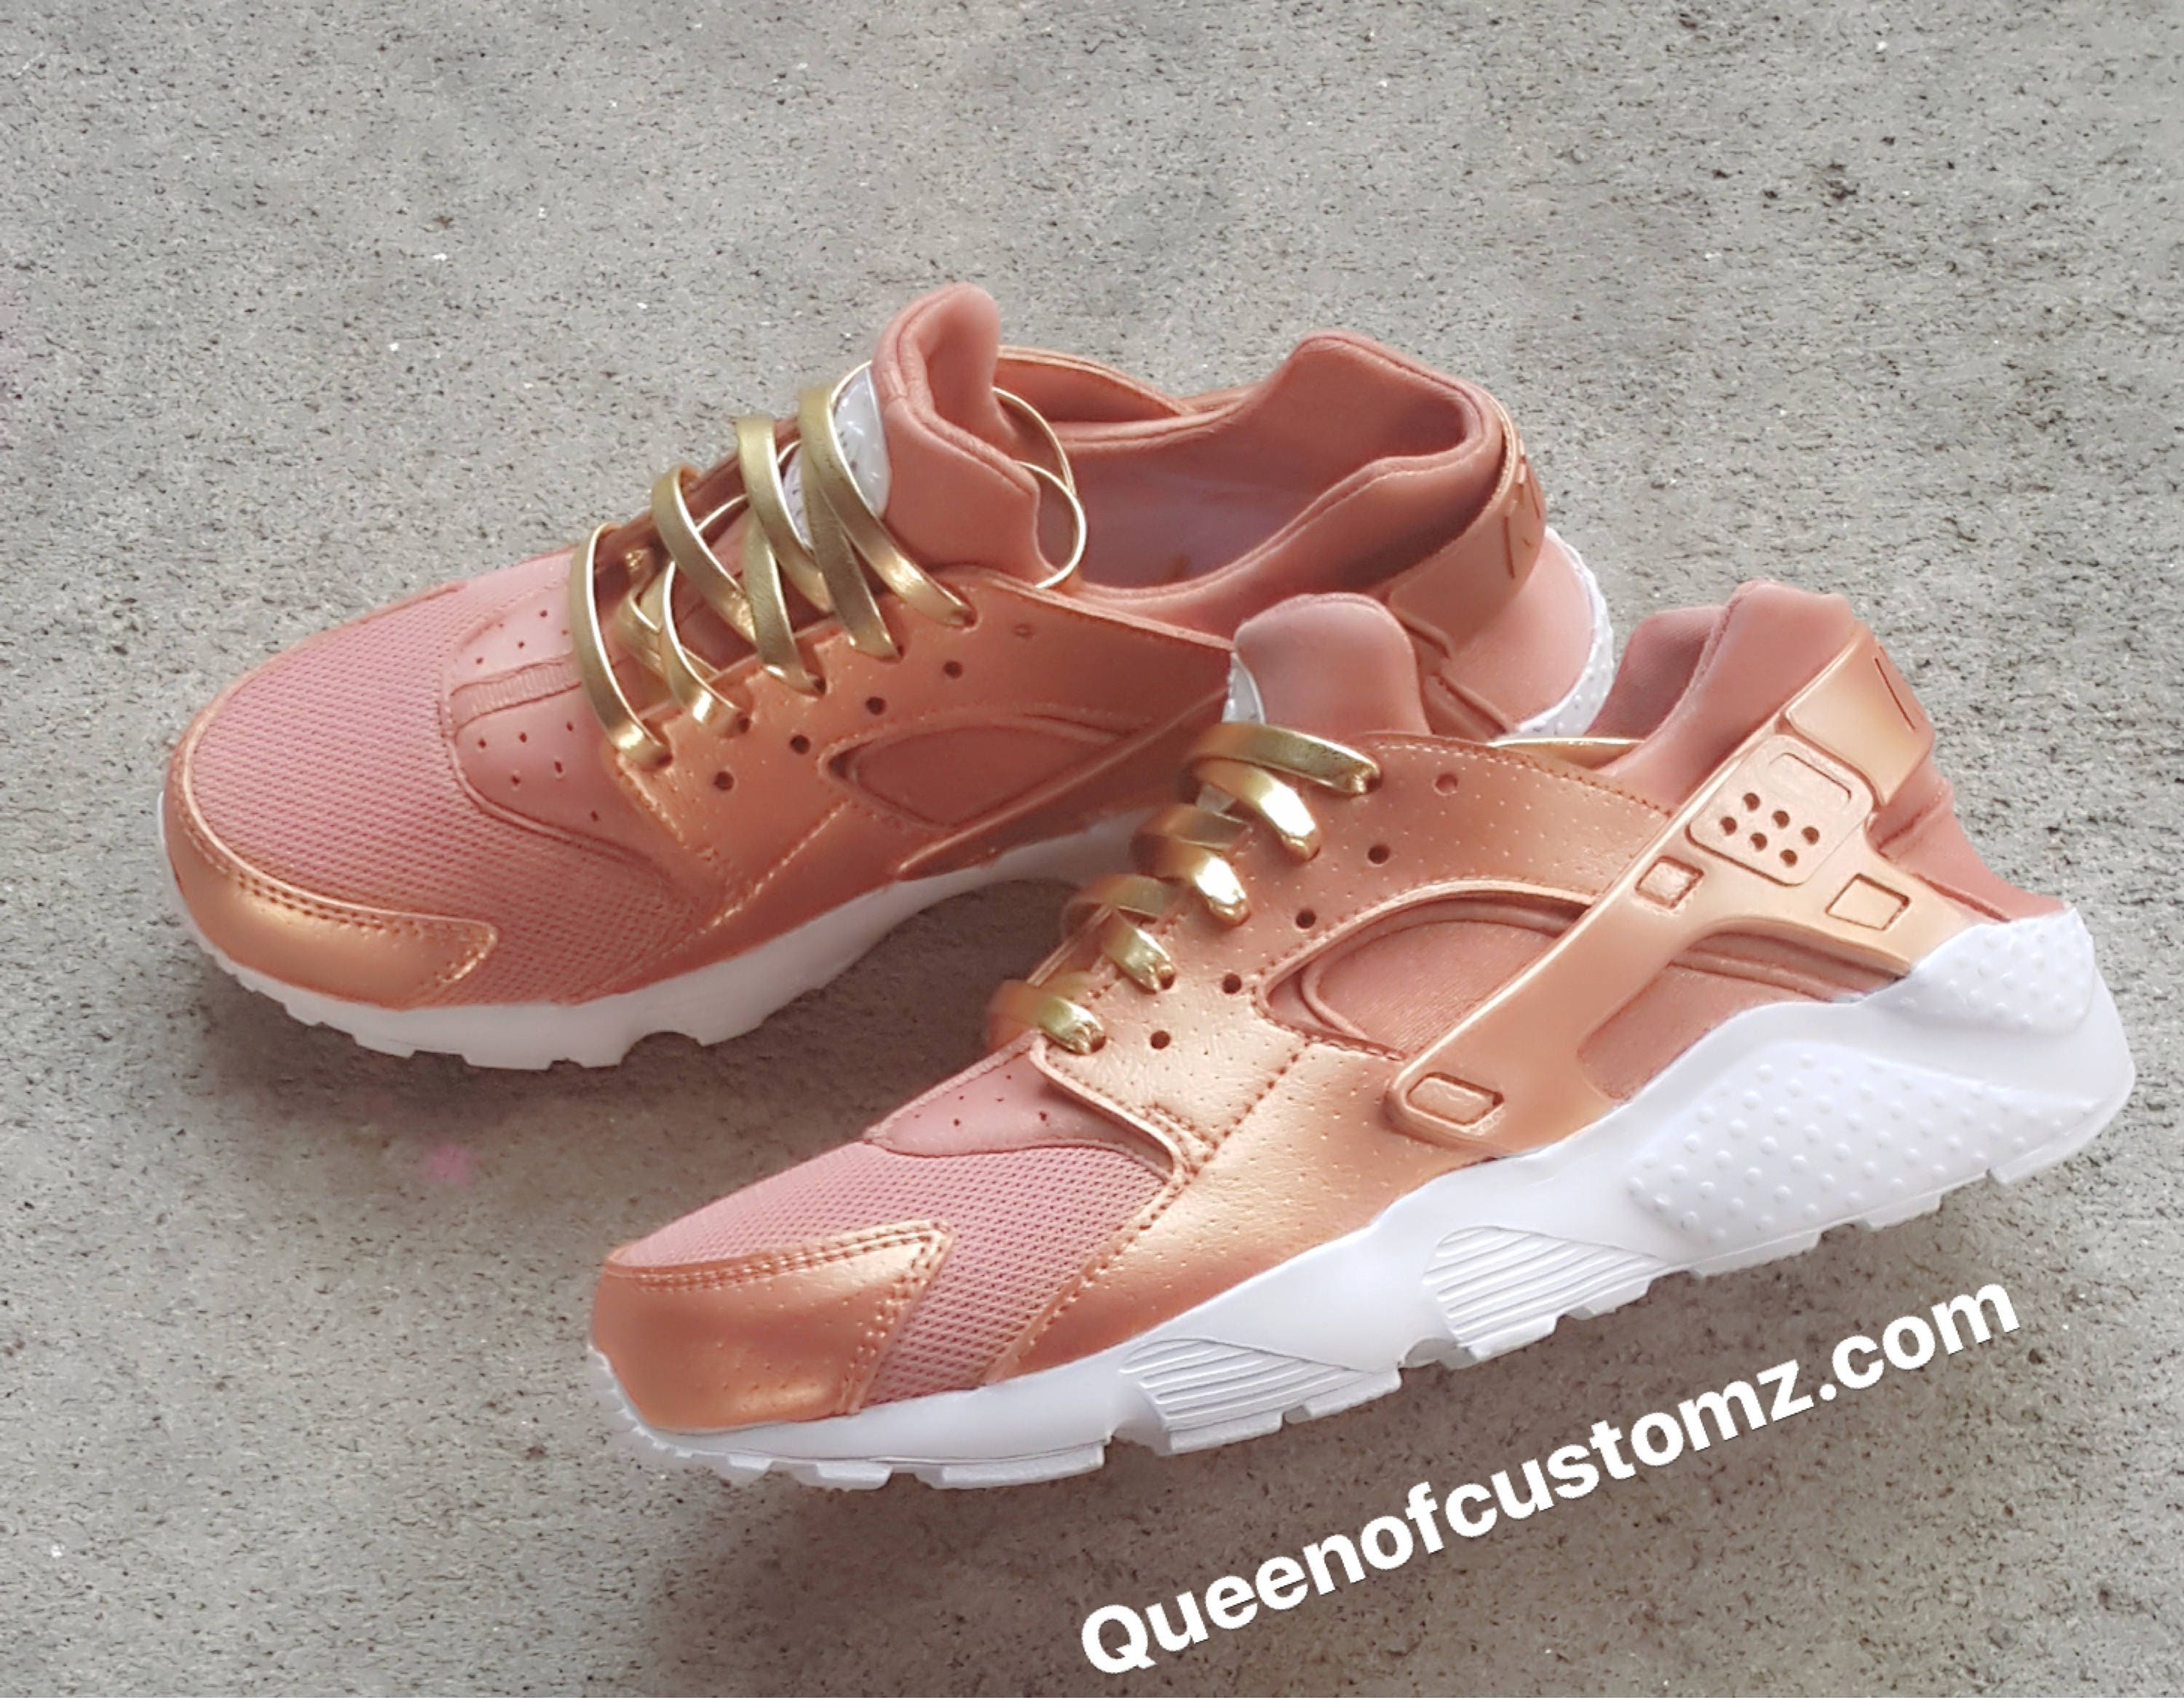 premium custom rose gold nike huarache. Black Bedroom Furniture Sets. Home Design Ideas